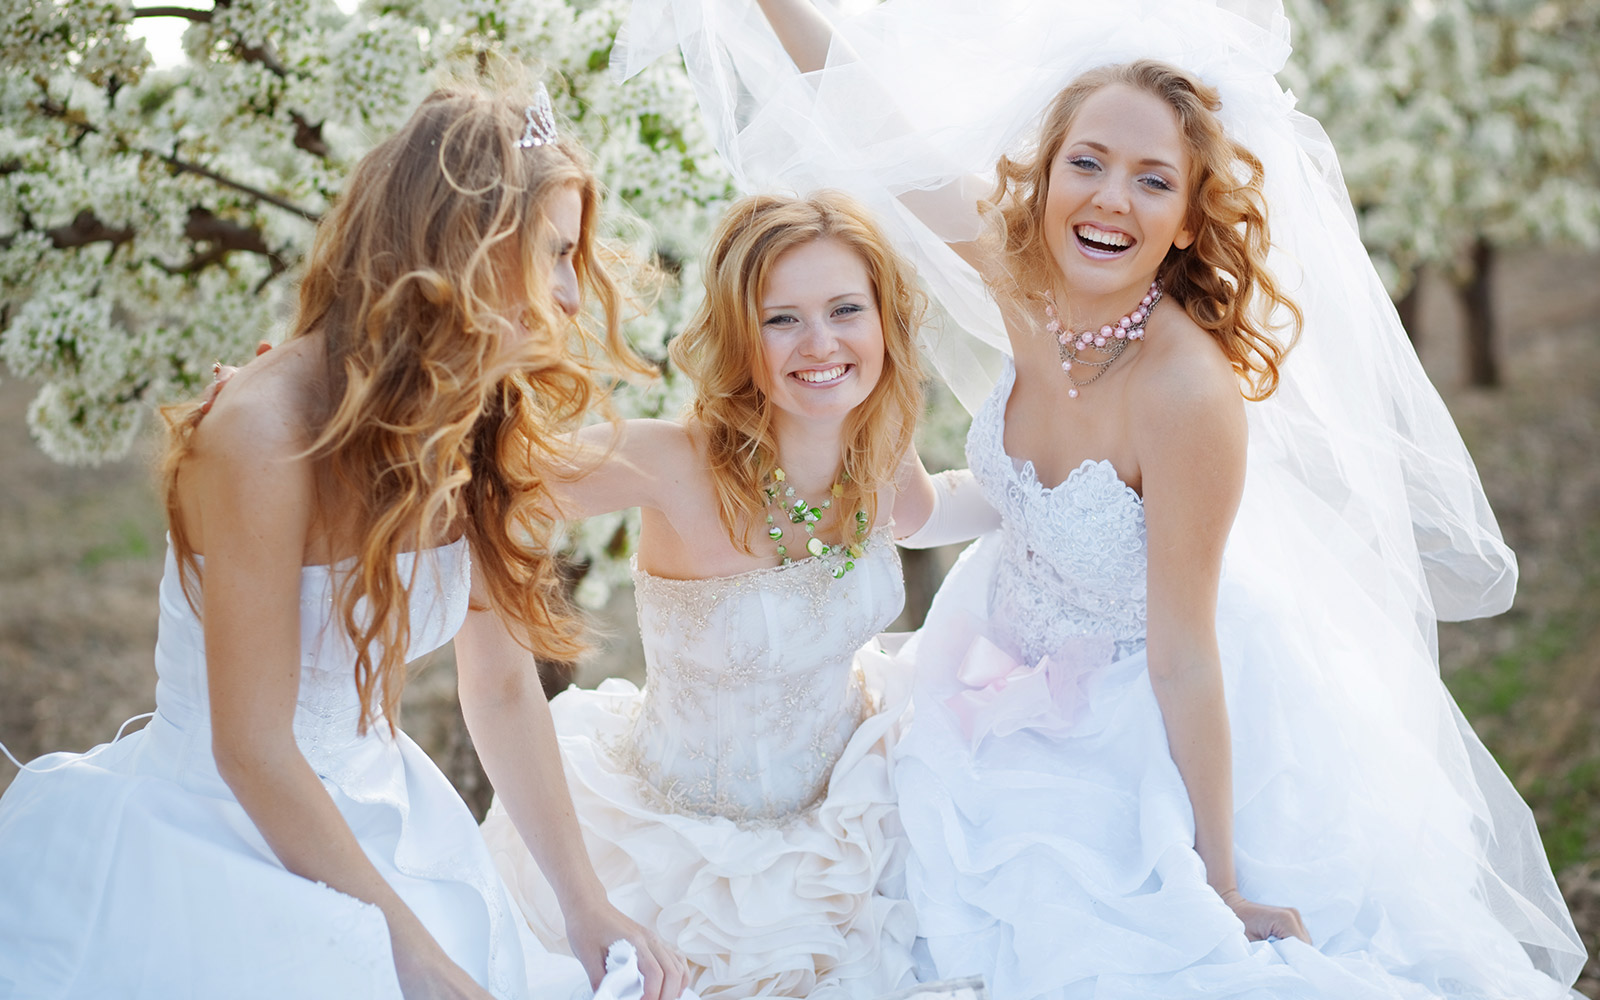 How to choose a beautiful dress for the wedding